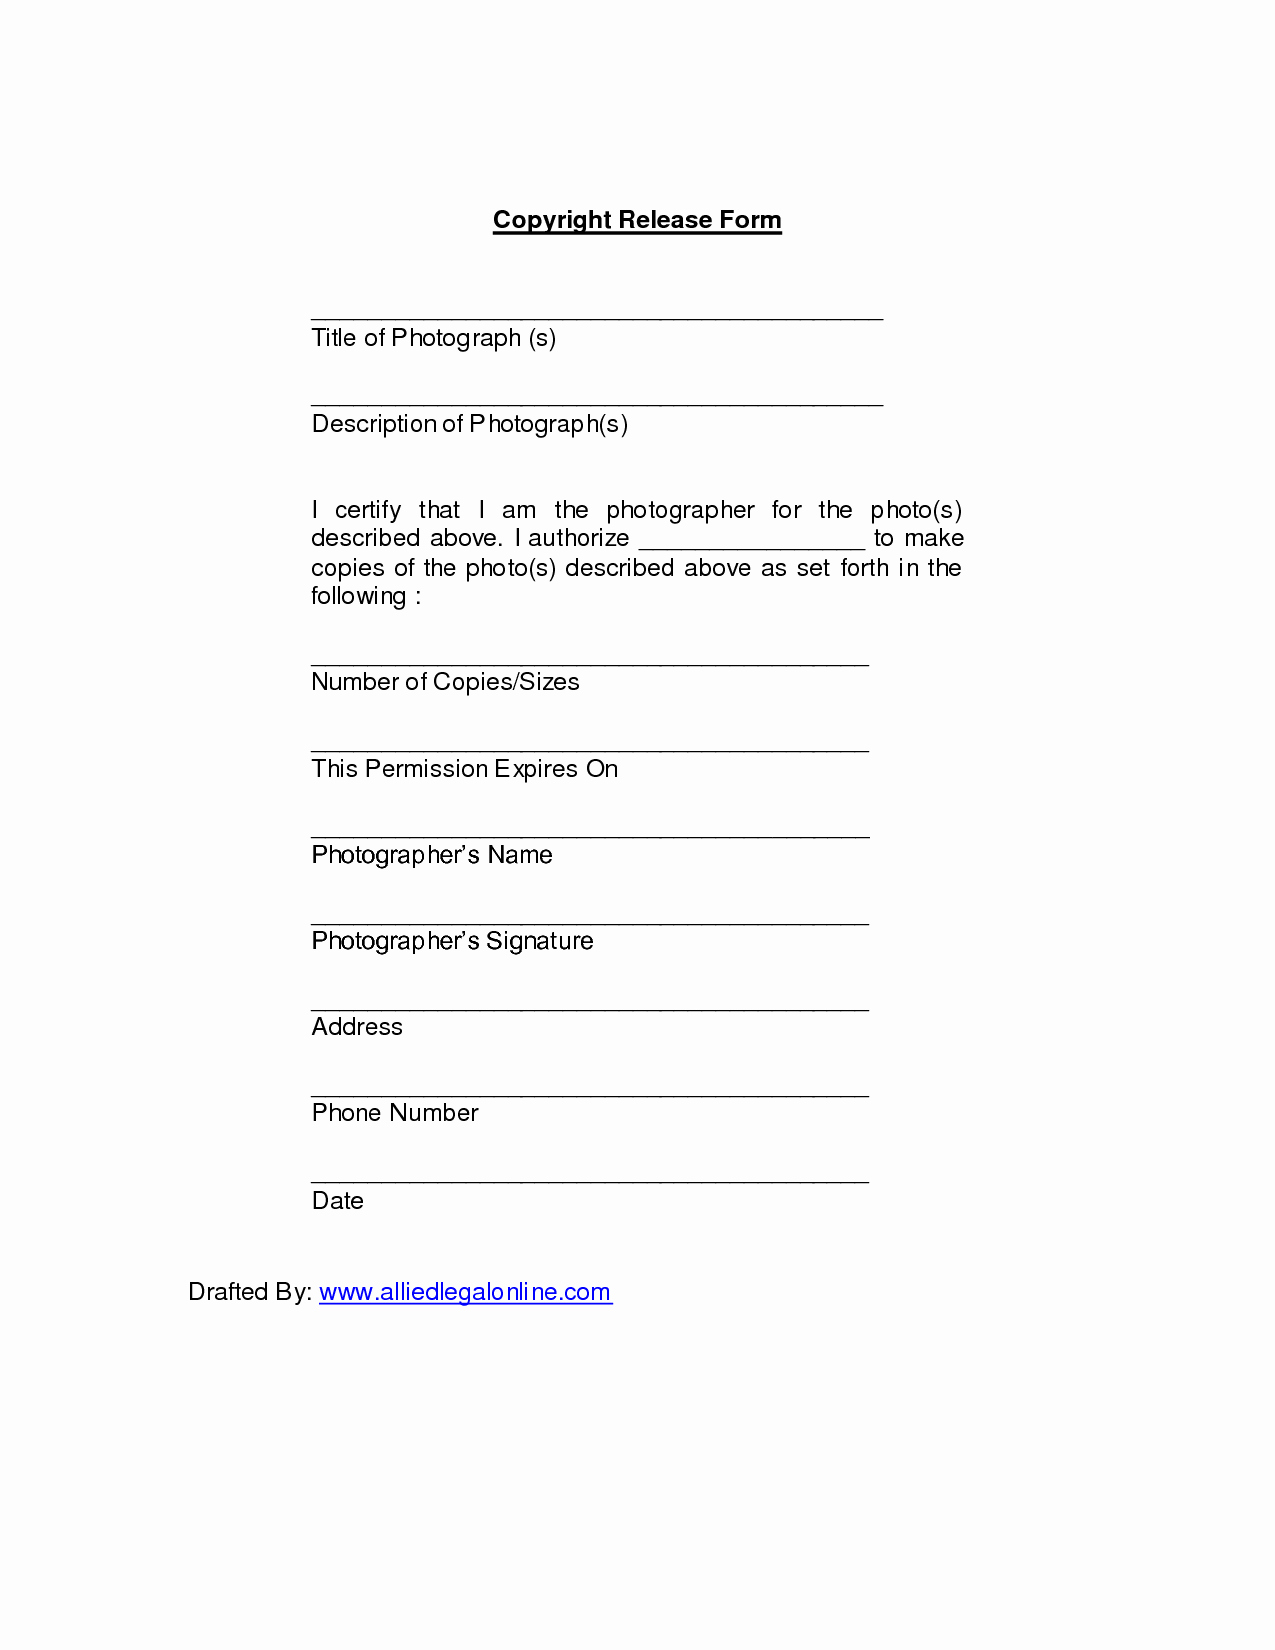 Copyright Release form Template New Copyright Release 11 Advantages Copyright Release and